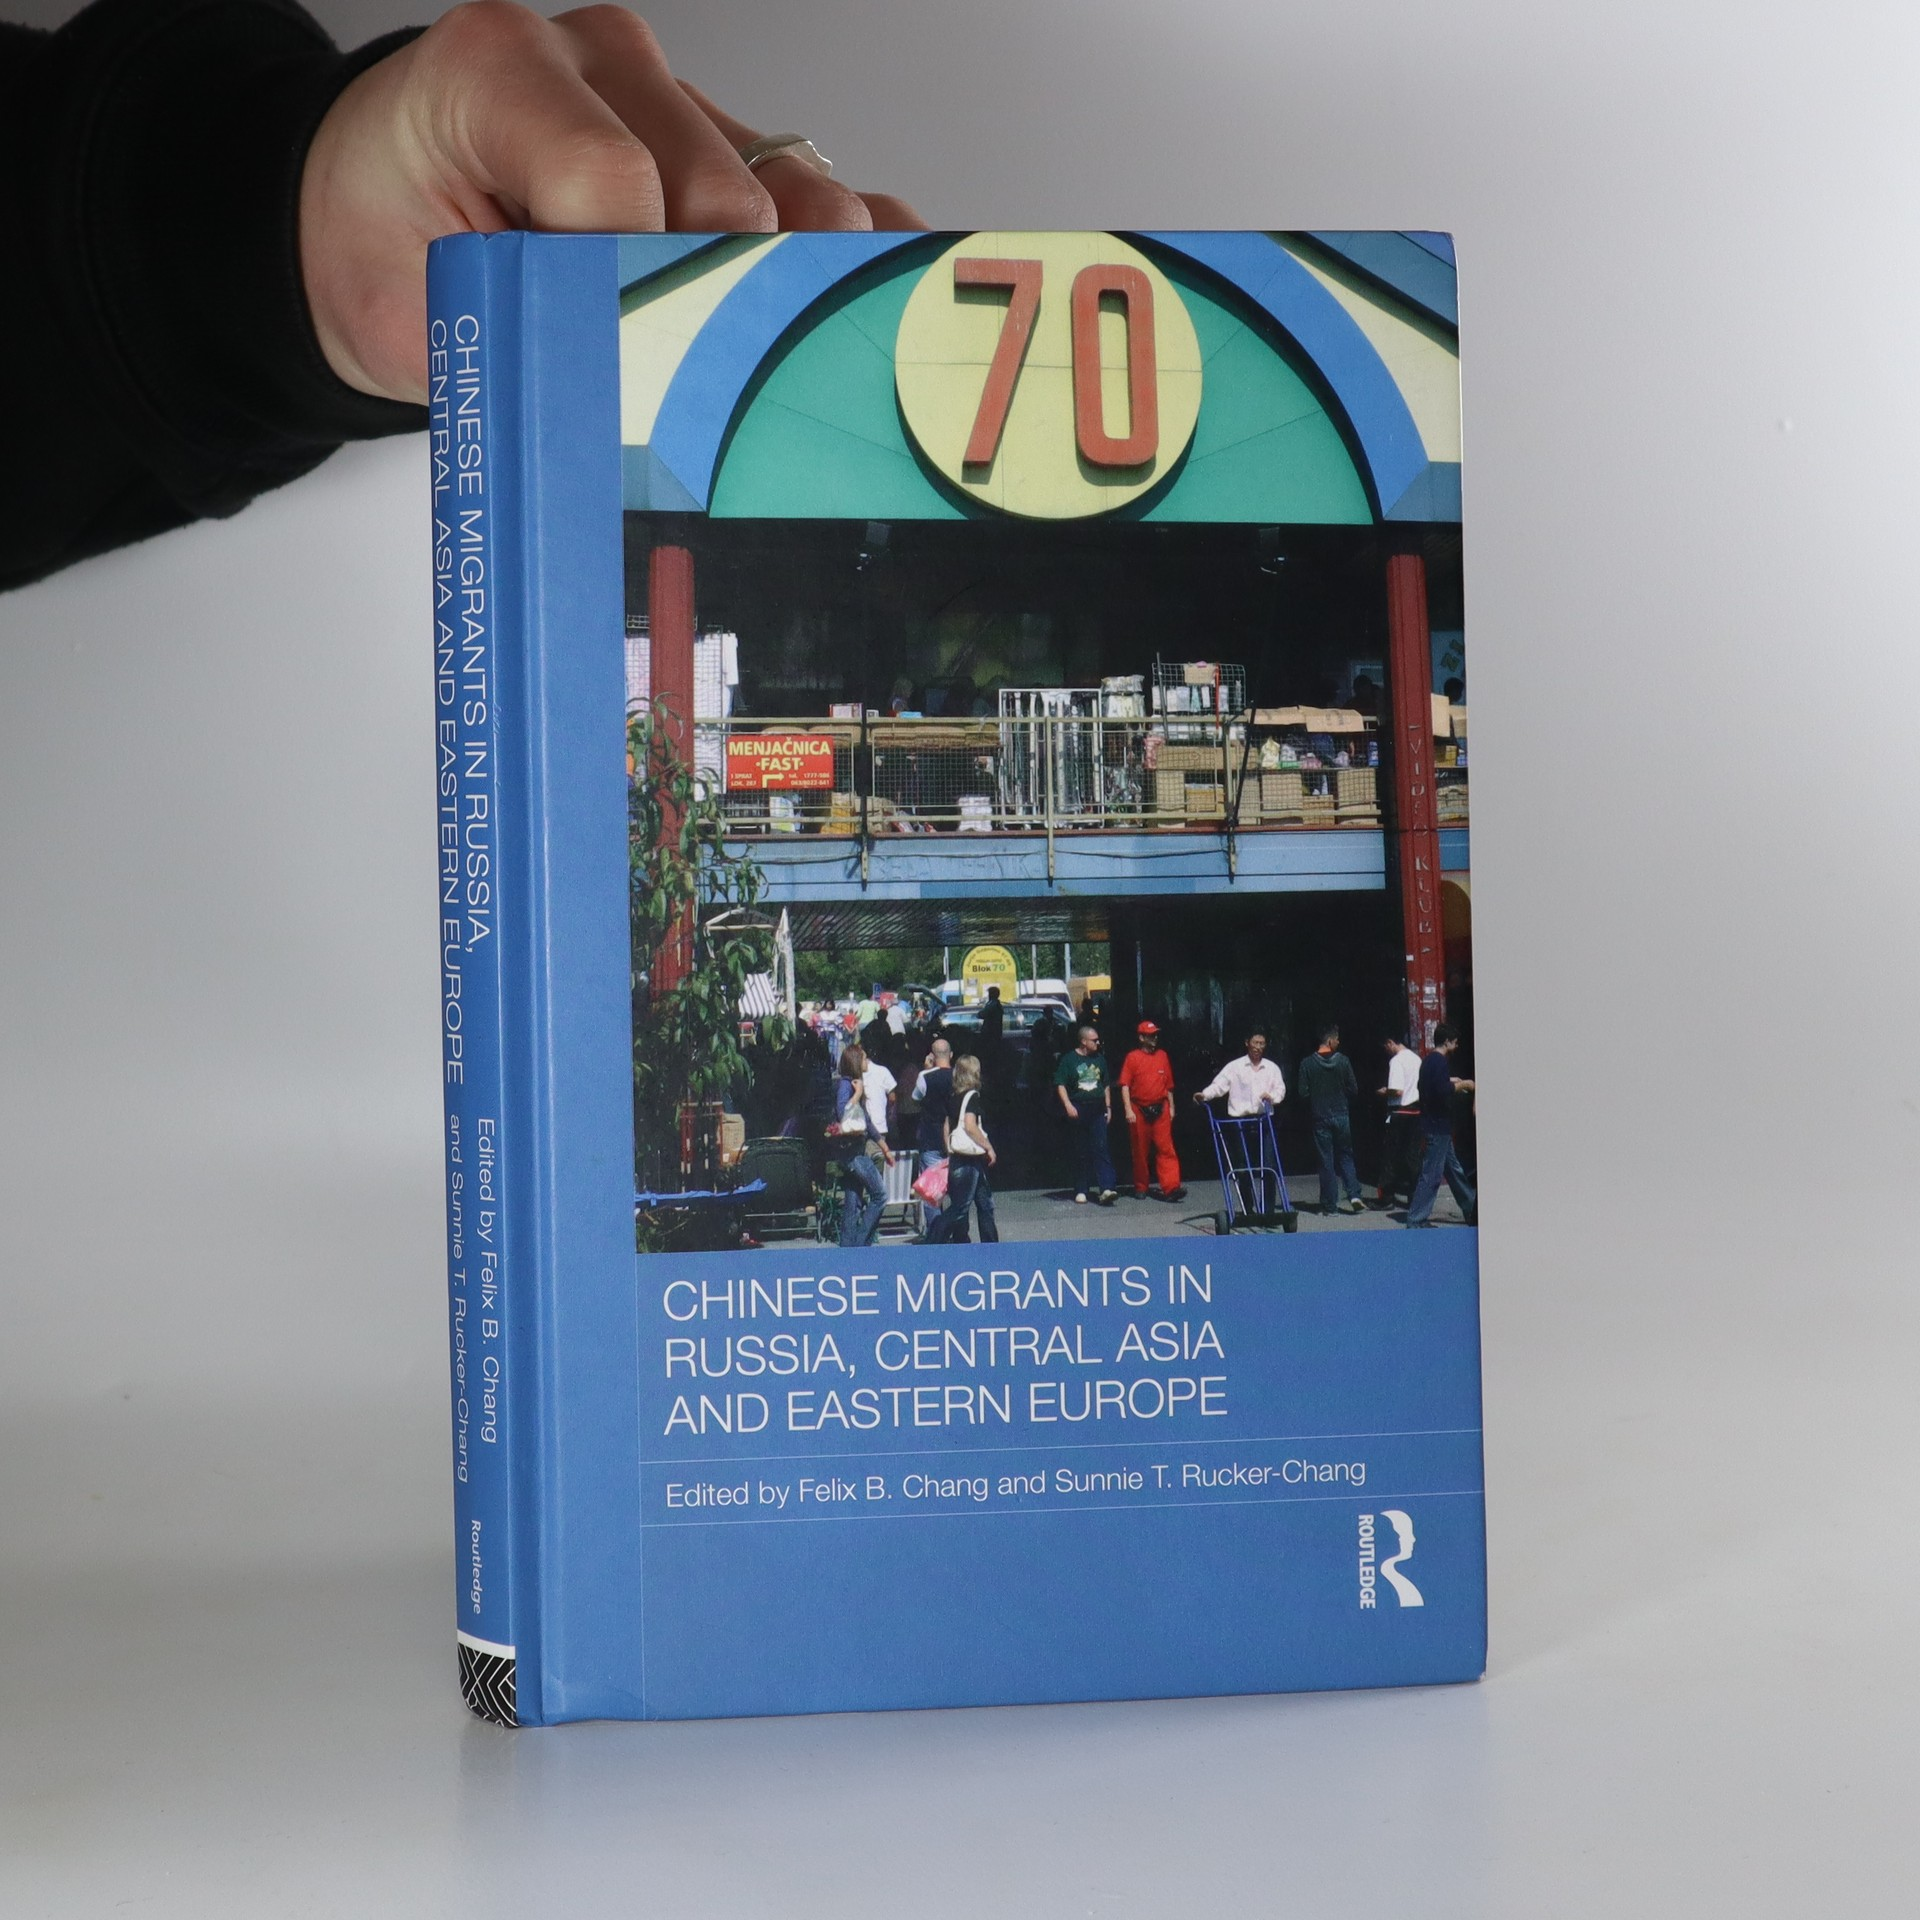 antikvární kniha Chinese migrants in Russia, Central Asia and Eastern Europe, 2011